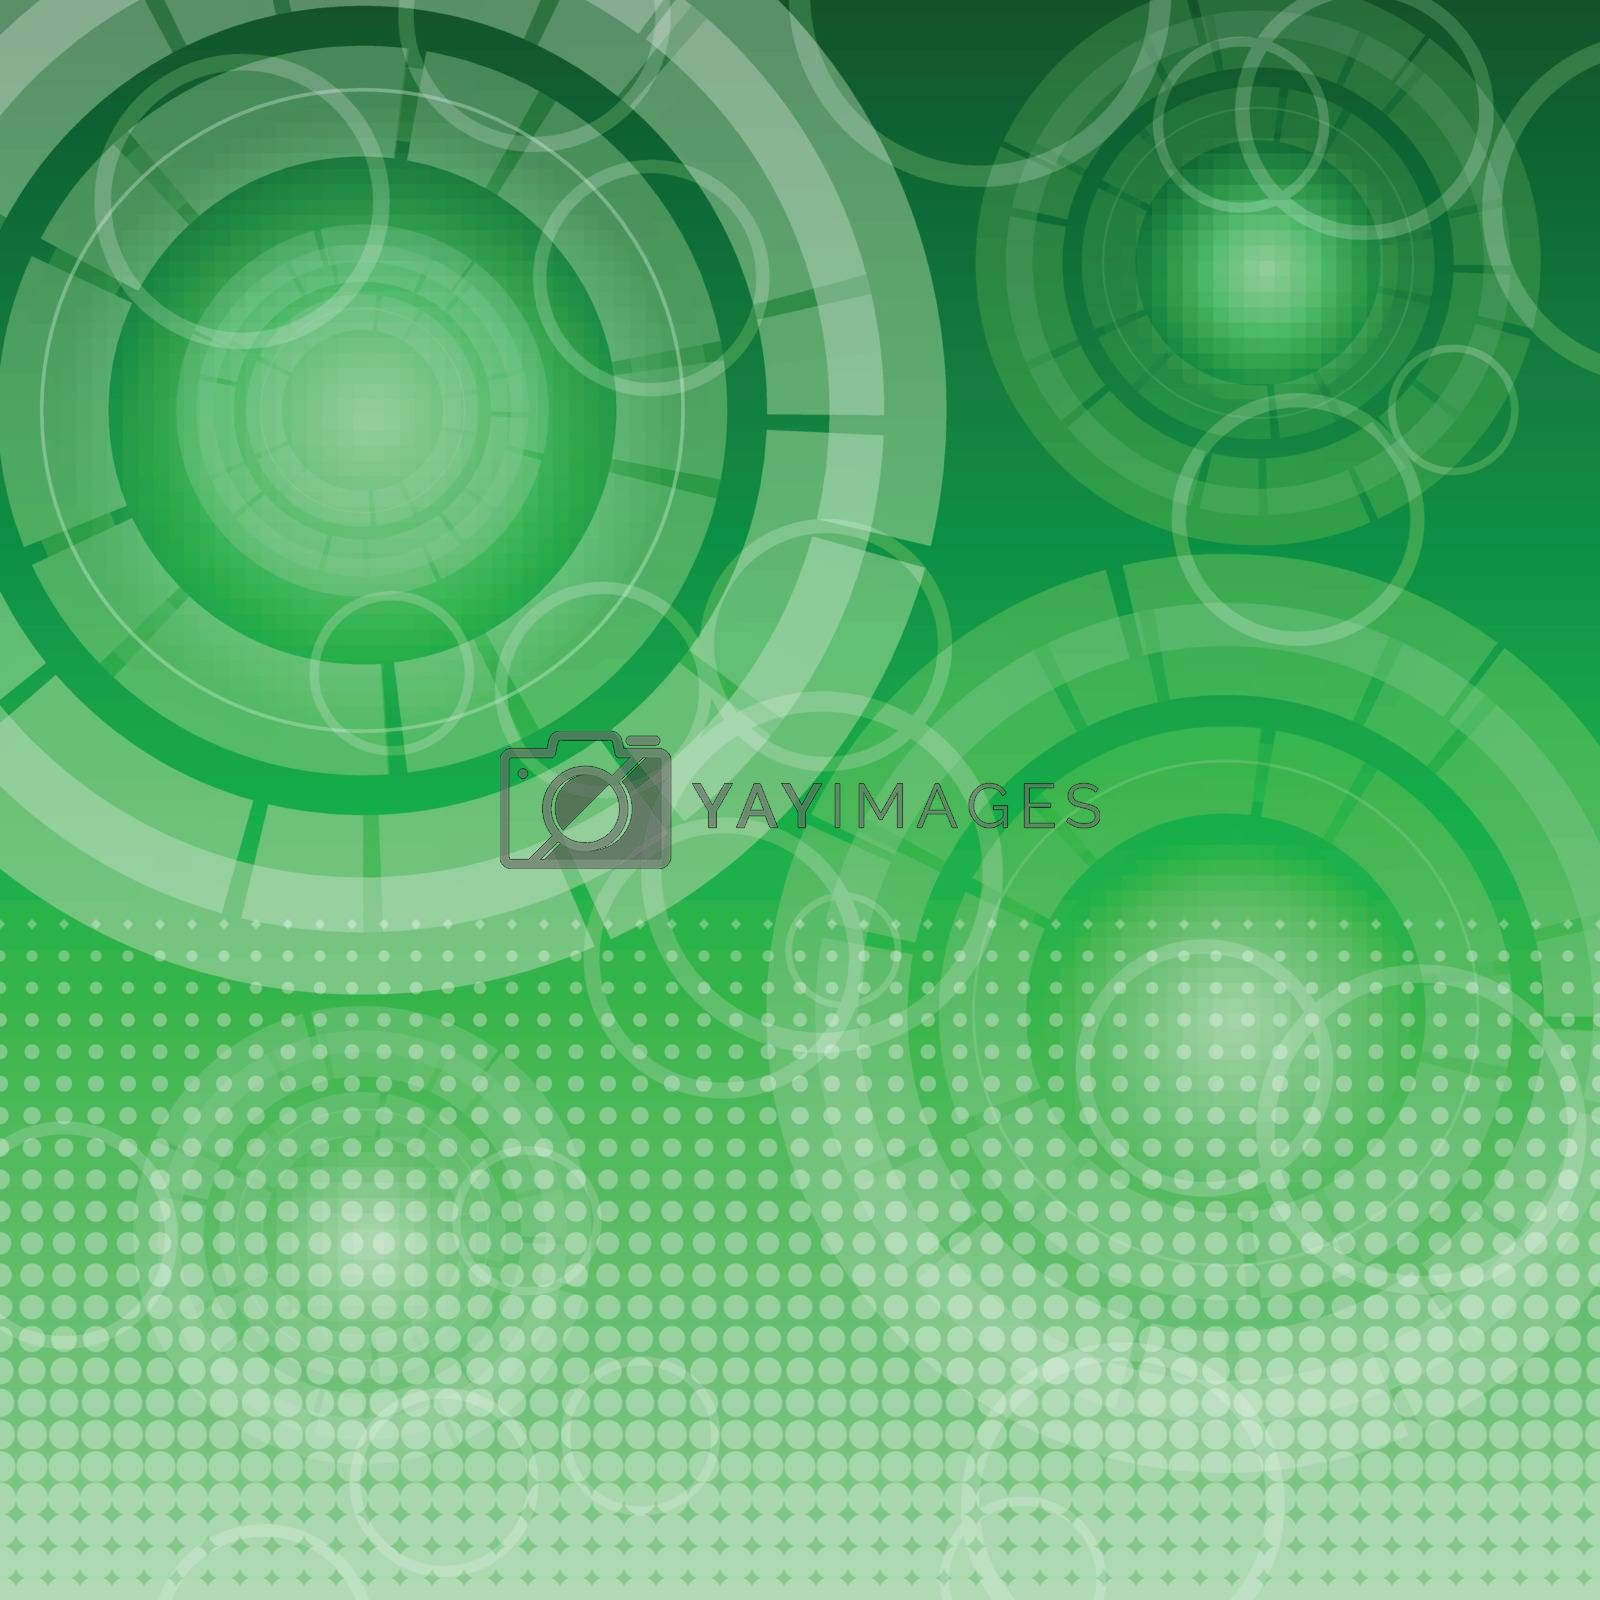 Royalty free image of Abstract technology on green background by punsayaporn